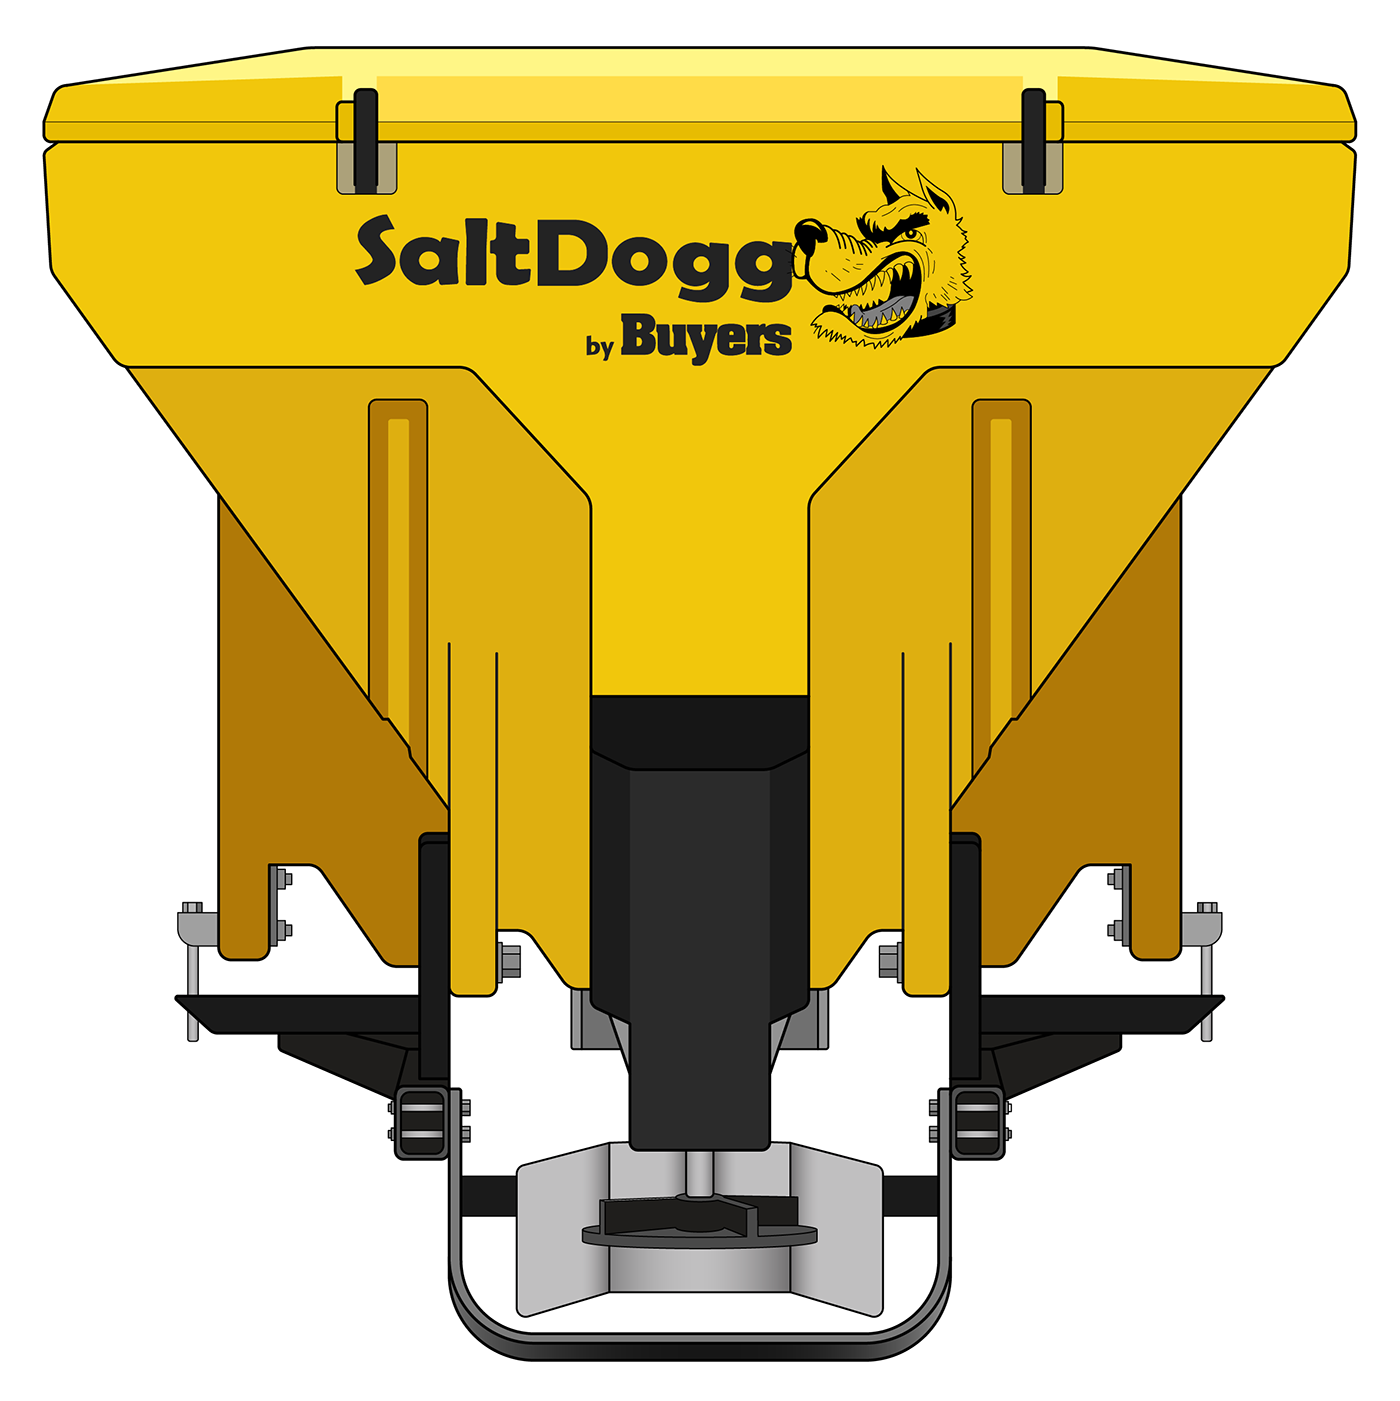 TGS07YEL-S.A.M. SaltDogg TGS07 11.0 Cubic Foot Yellow Polymer Electric Tailgate Spreader